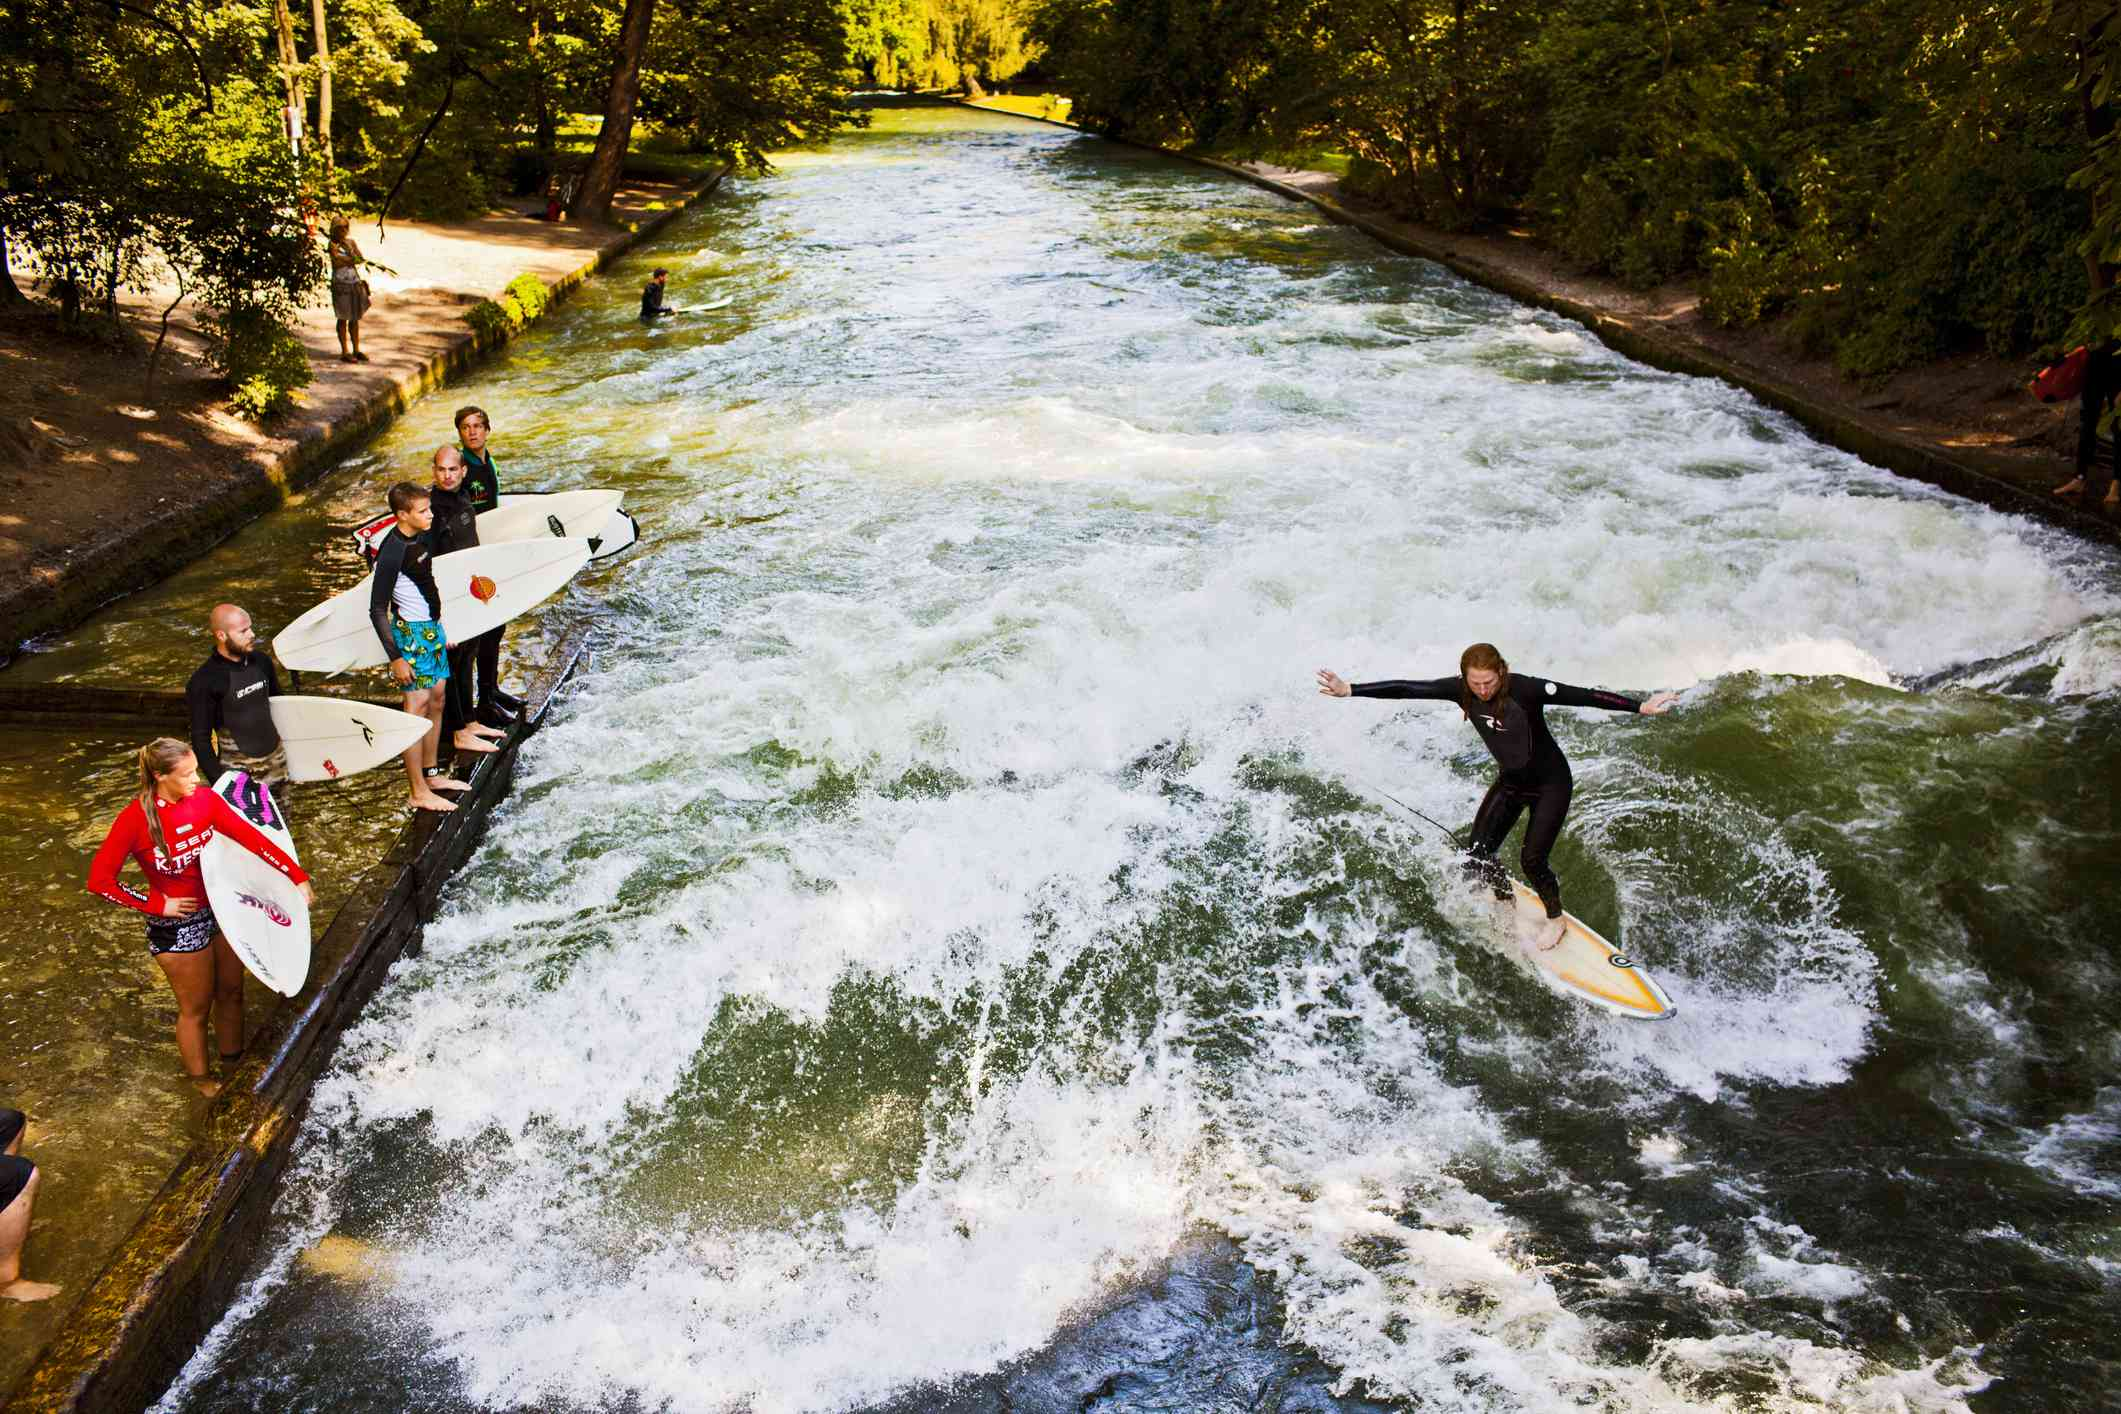 Bright green water of the Eisbach River with one surfer riding a wive while other surfers holding boards stand on a platform nearby, further down the river, the banks covered with green foliage on a sunny day